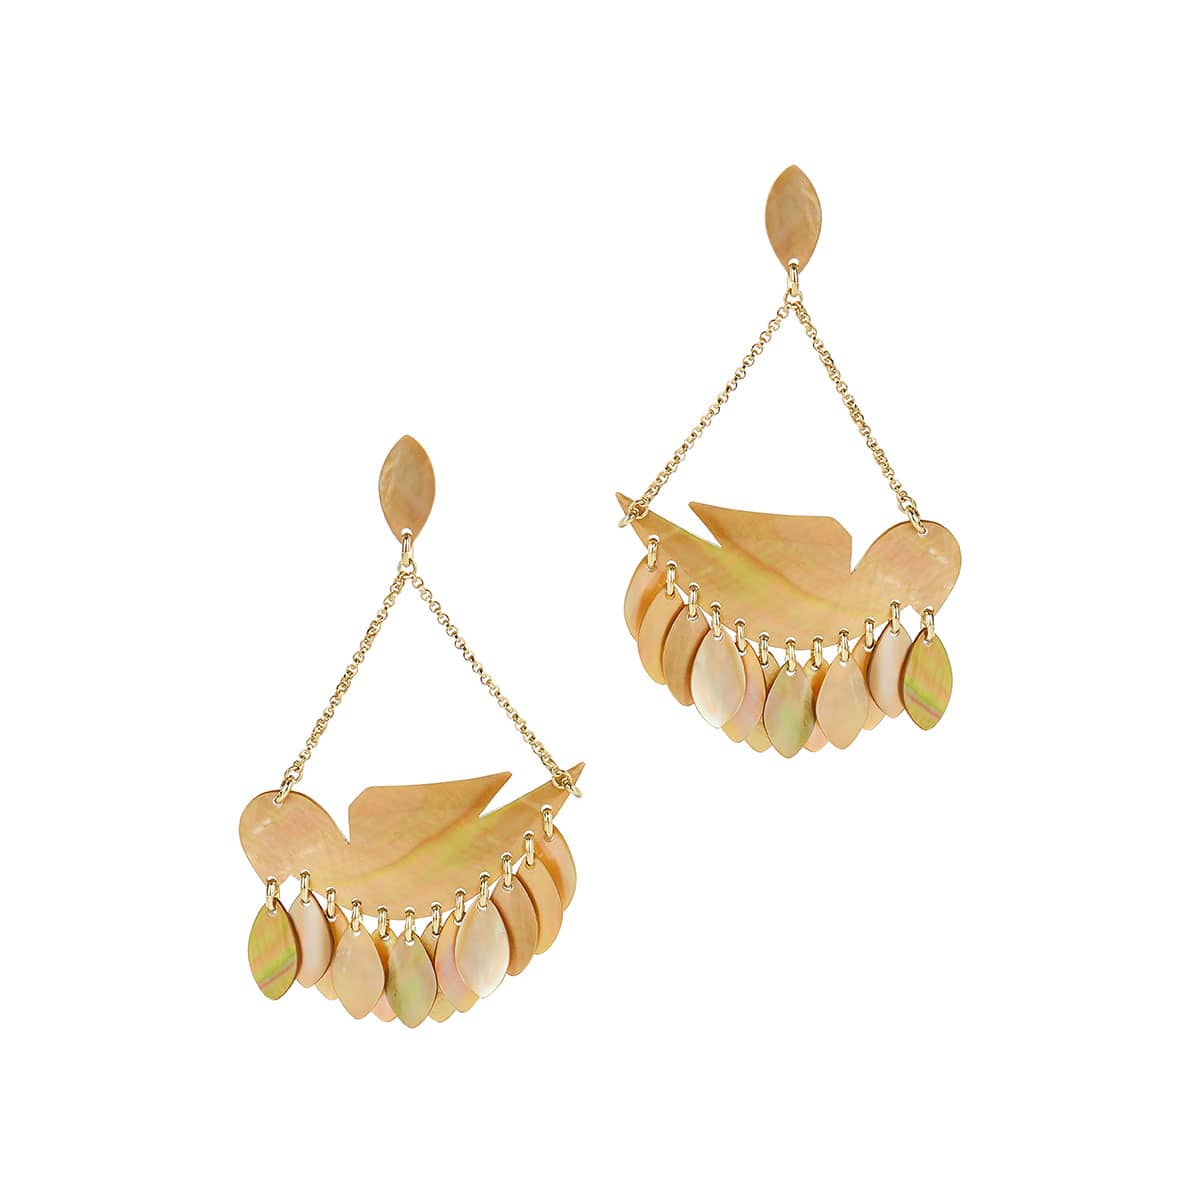 Birdy seashell drop earrings